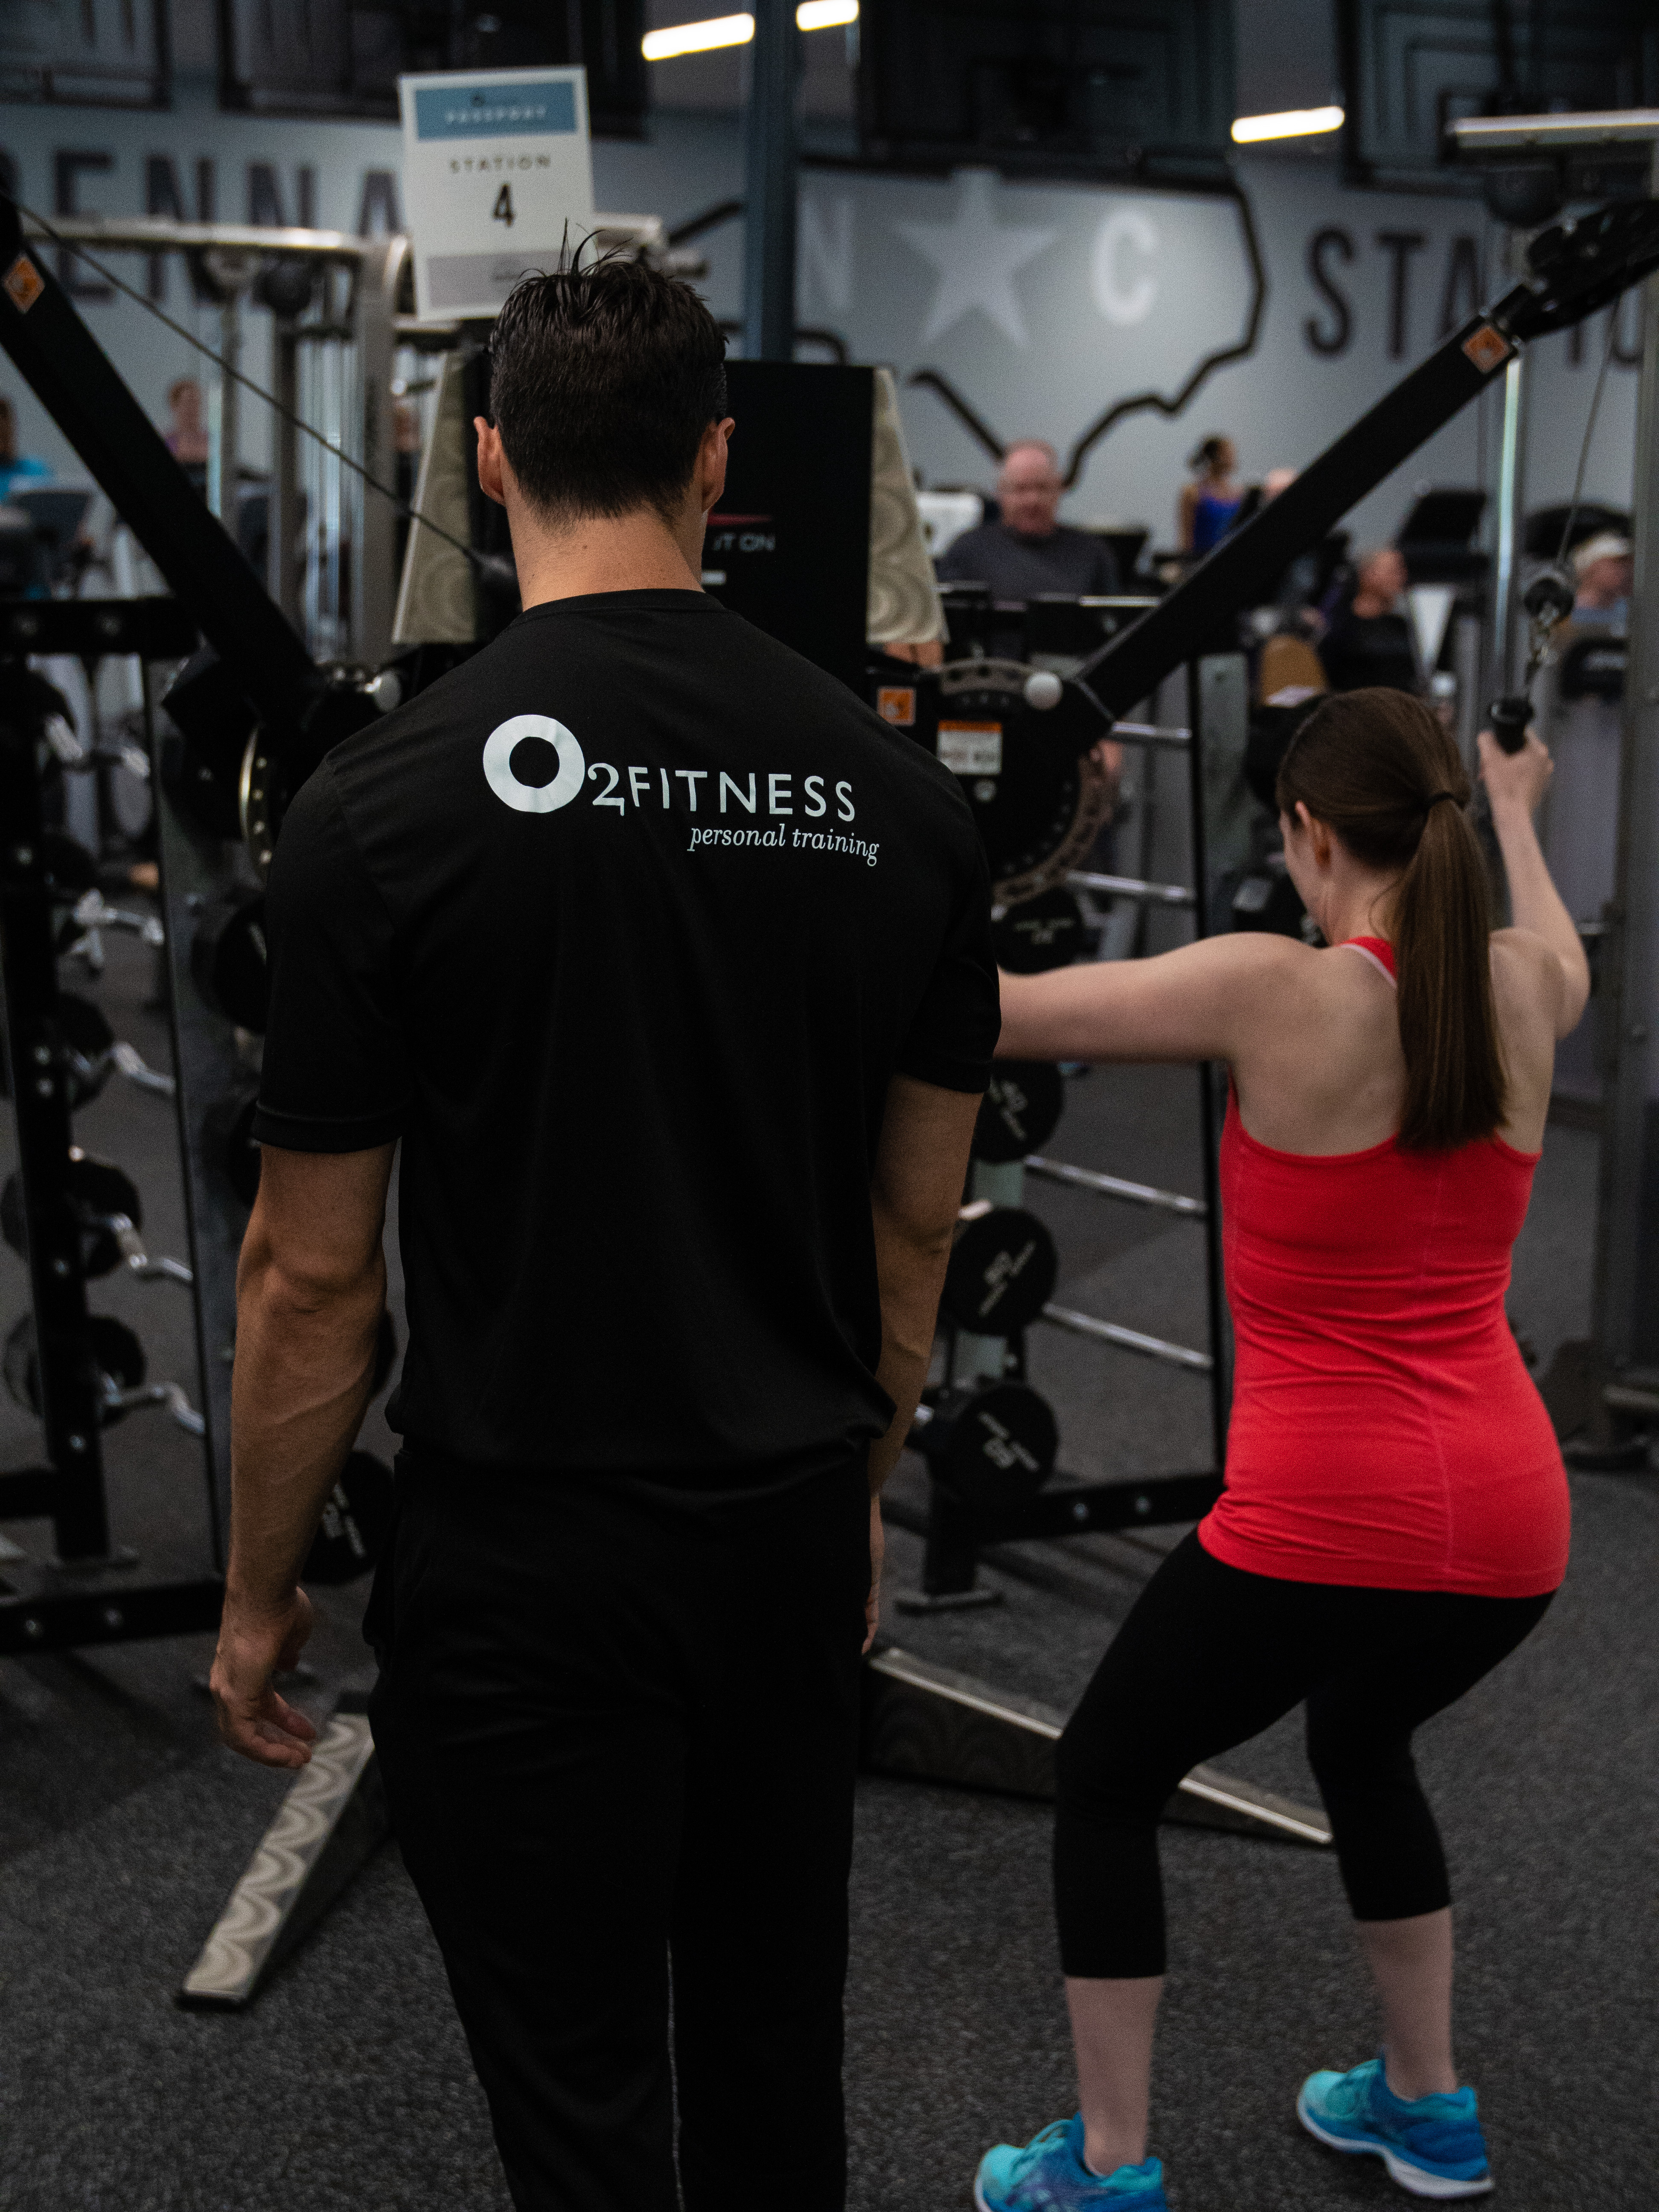 O2-Fitness-Personal-Training